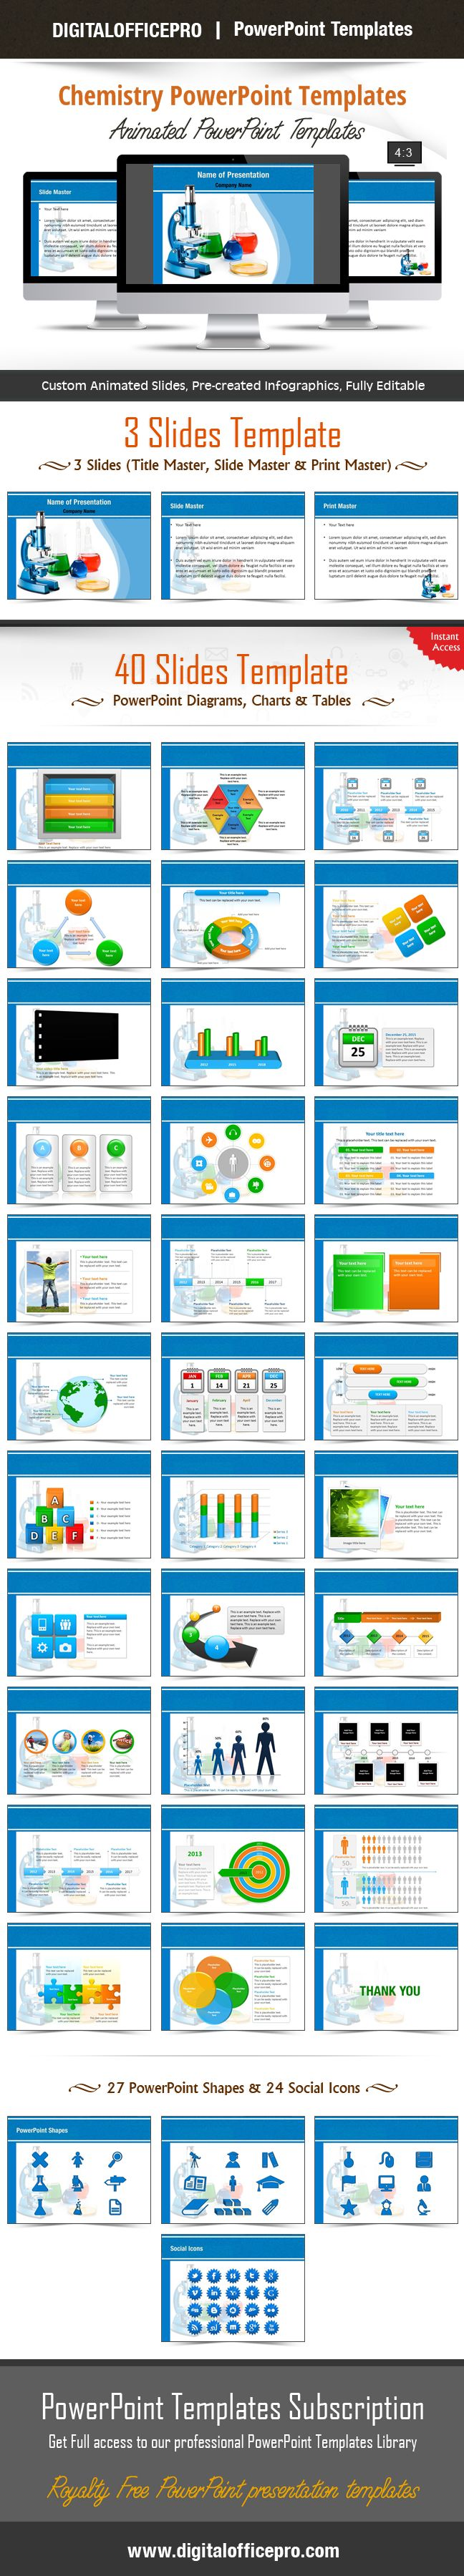 The 25 best ideas about Background For Powerpoint Presentation on – Chemistry Chart Template